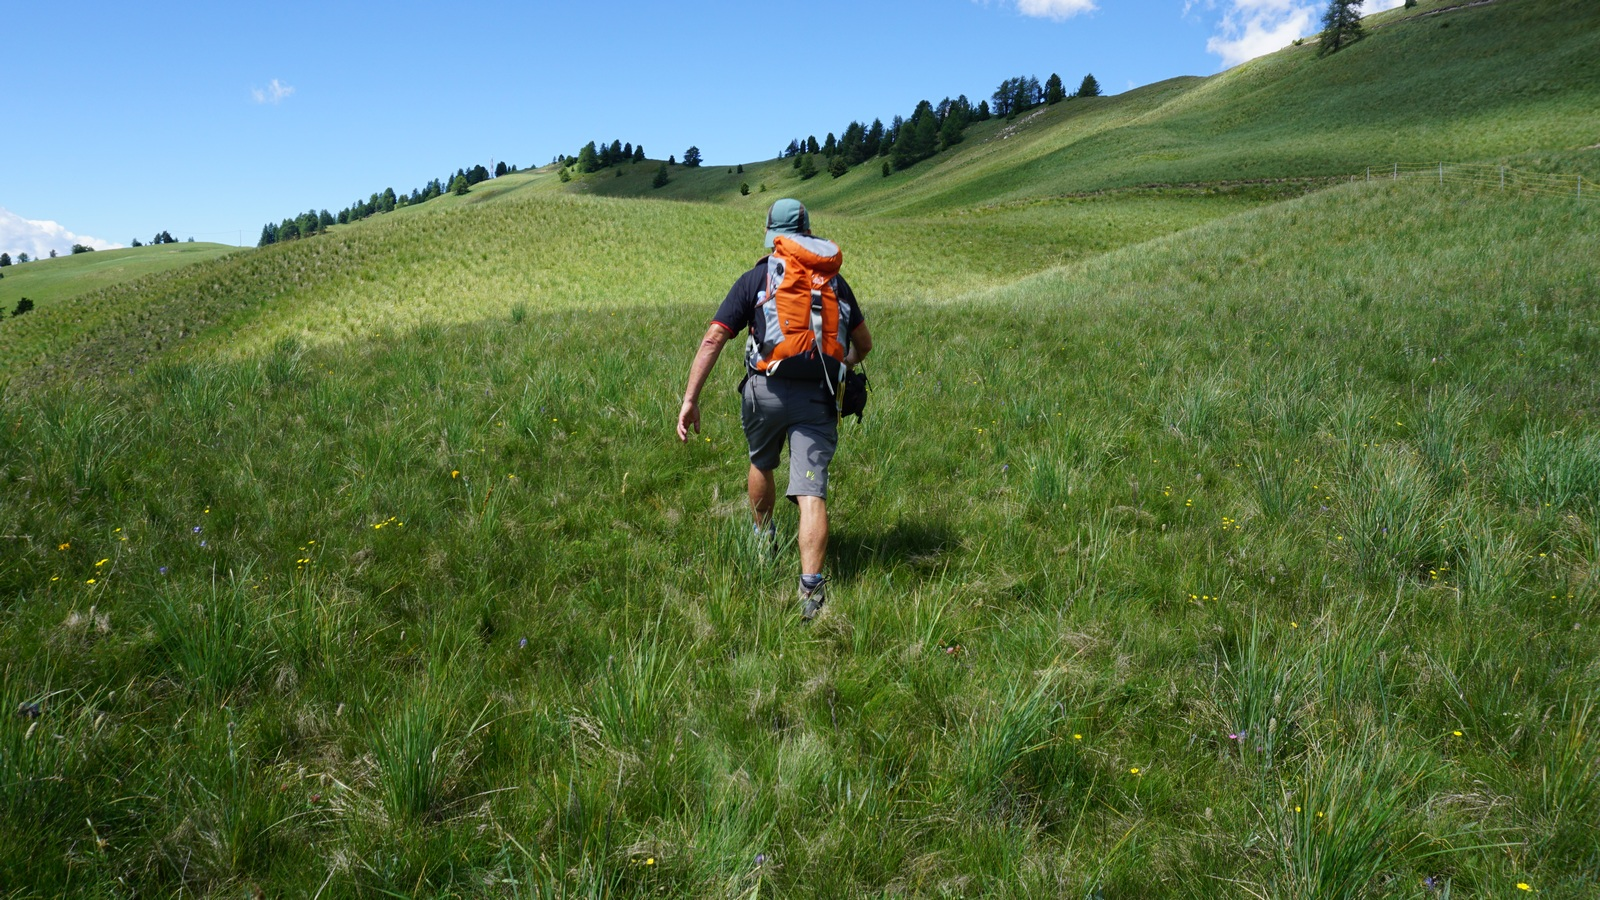 Heading to Peynier summit along alpine meadow